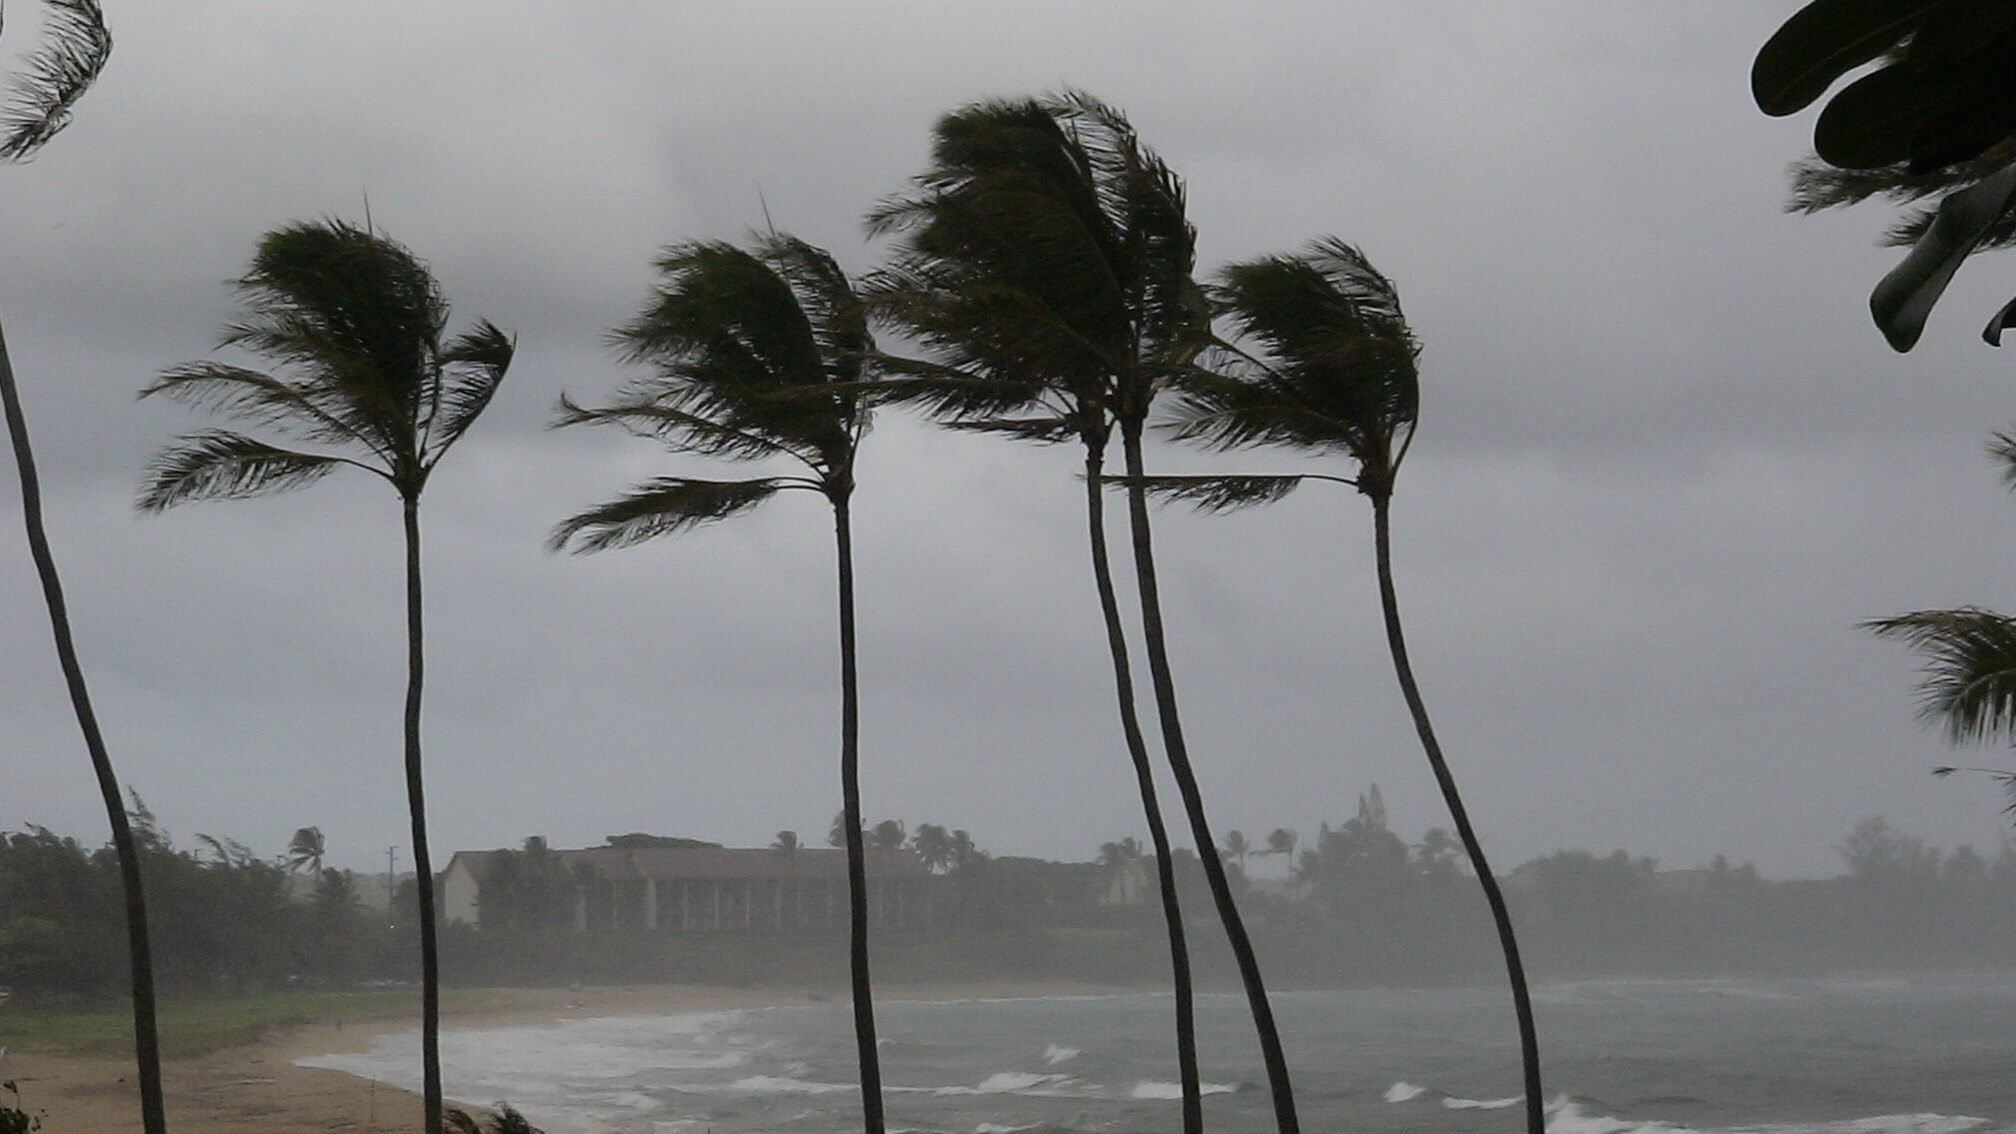 Palm trees in Hawaii blowing in a storm